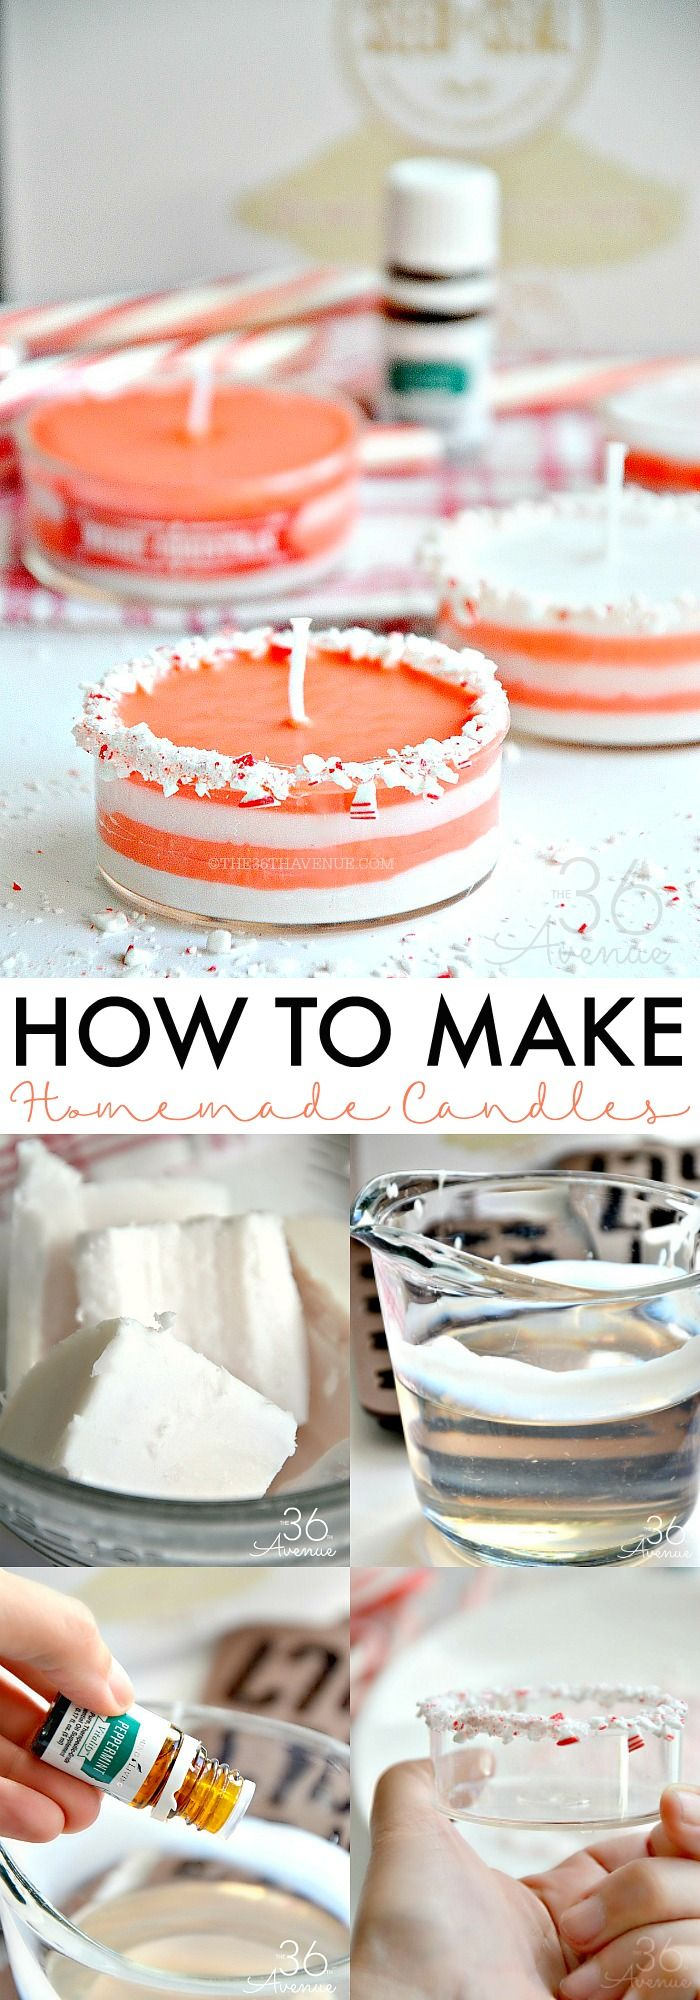 How to make homemade candles - These Peppermint Candles are easy to make and super fun to give!